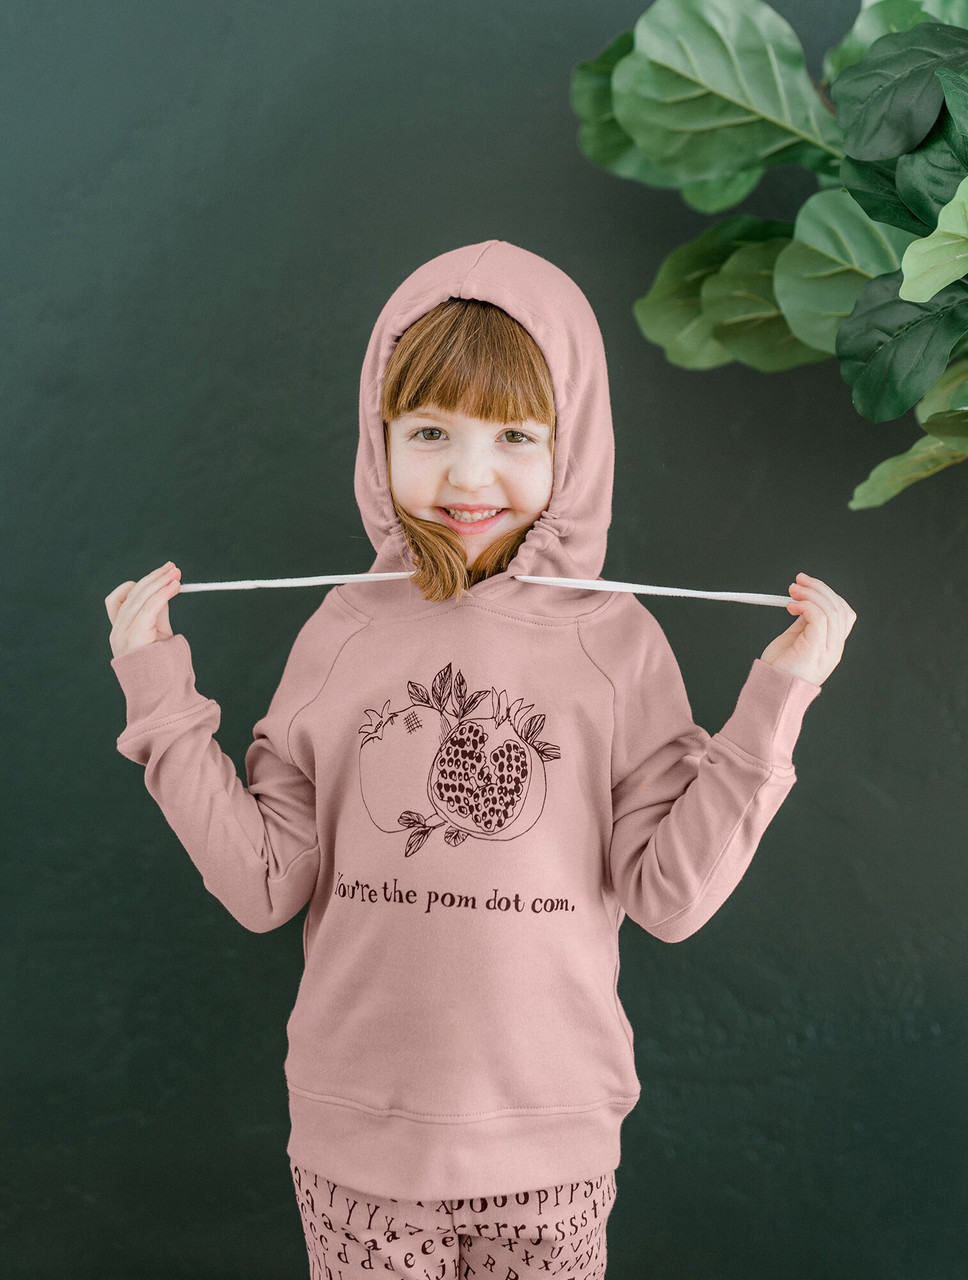 Organic Kids' Graphic Hooded Sweatshirt in Mauve Pomegranate, Lifestyle